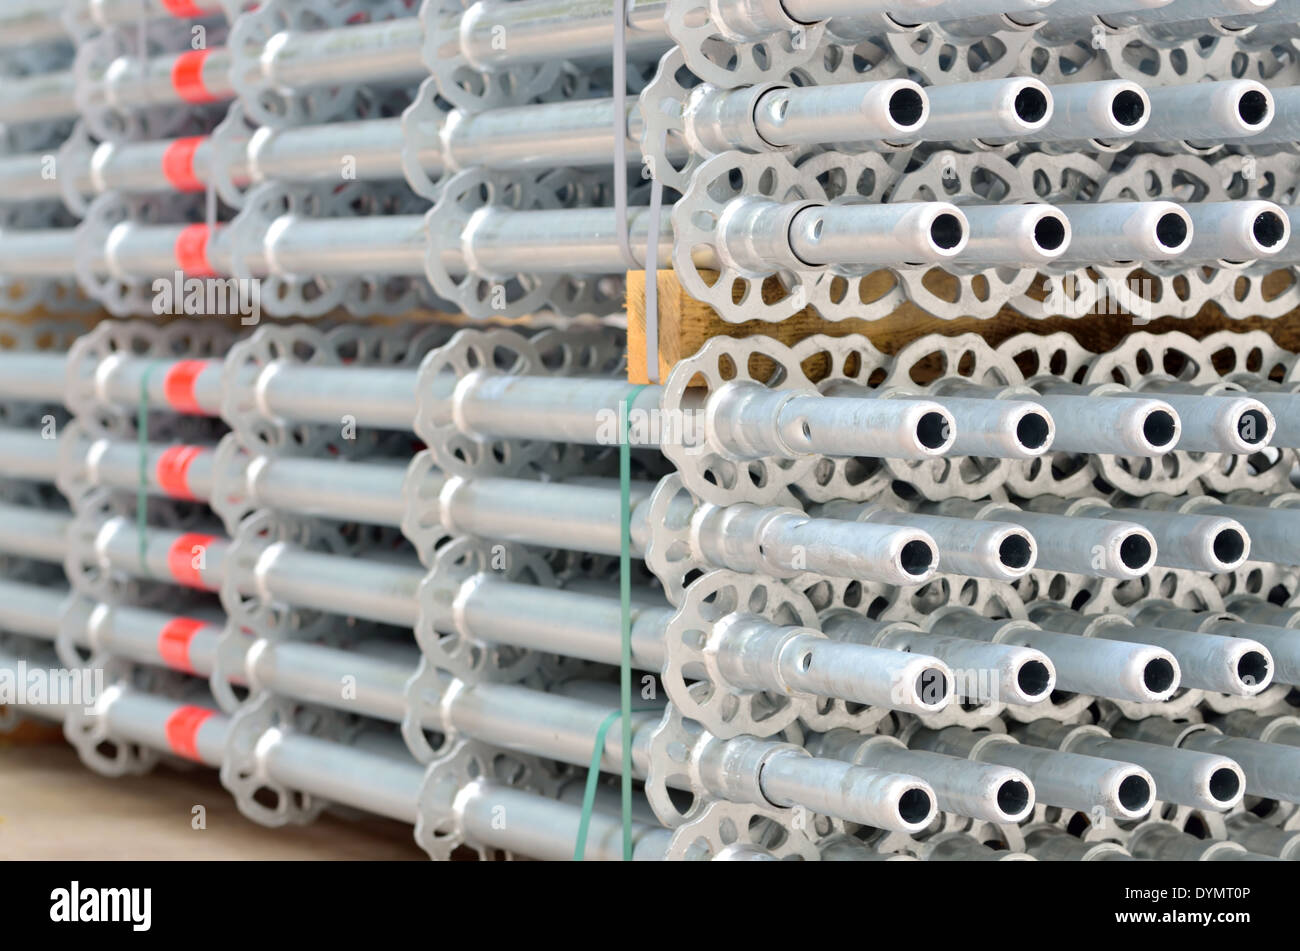 details stack of scaffolding for construction - Stock Image